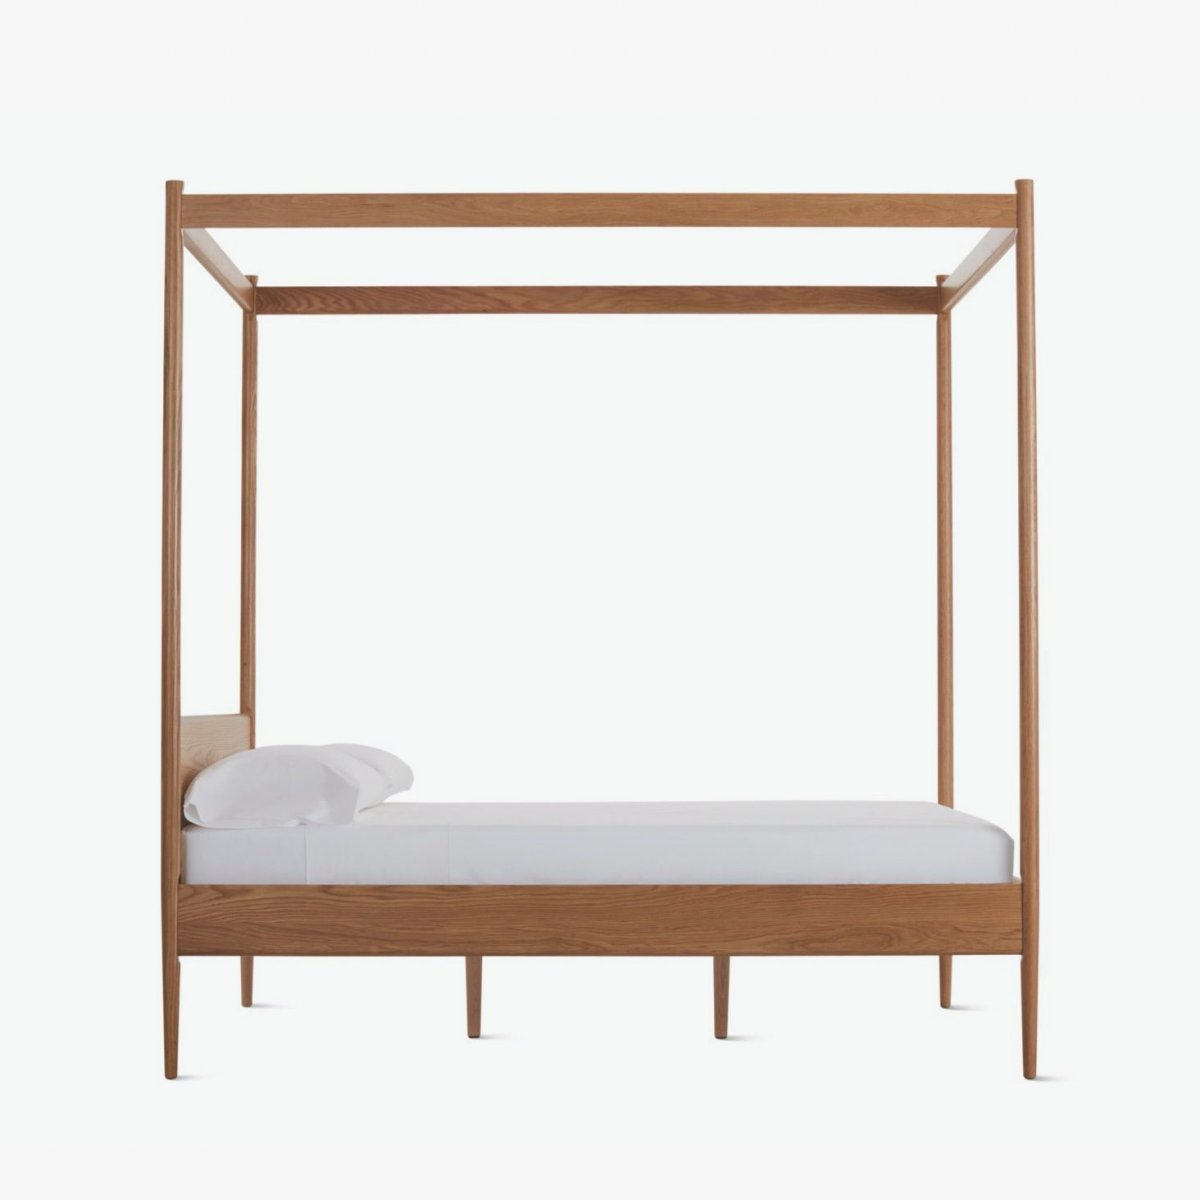 Cove Canopy Bed, oak, side view.